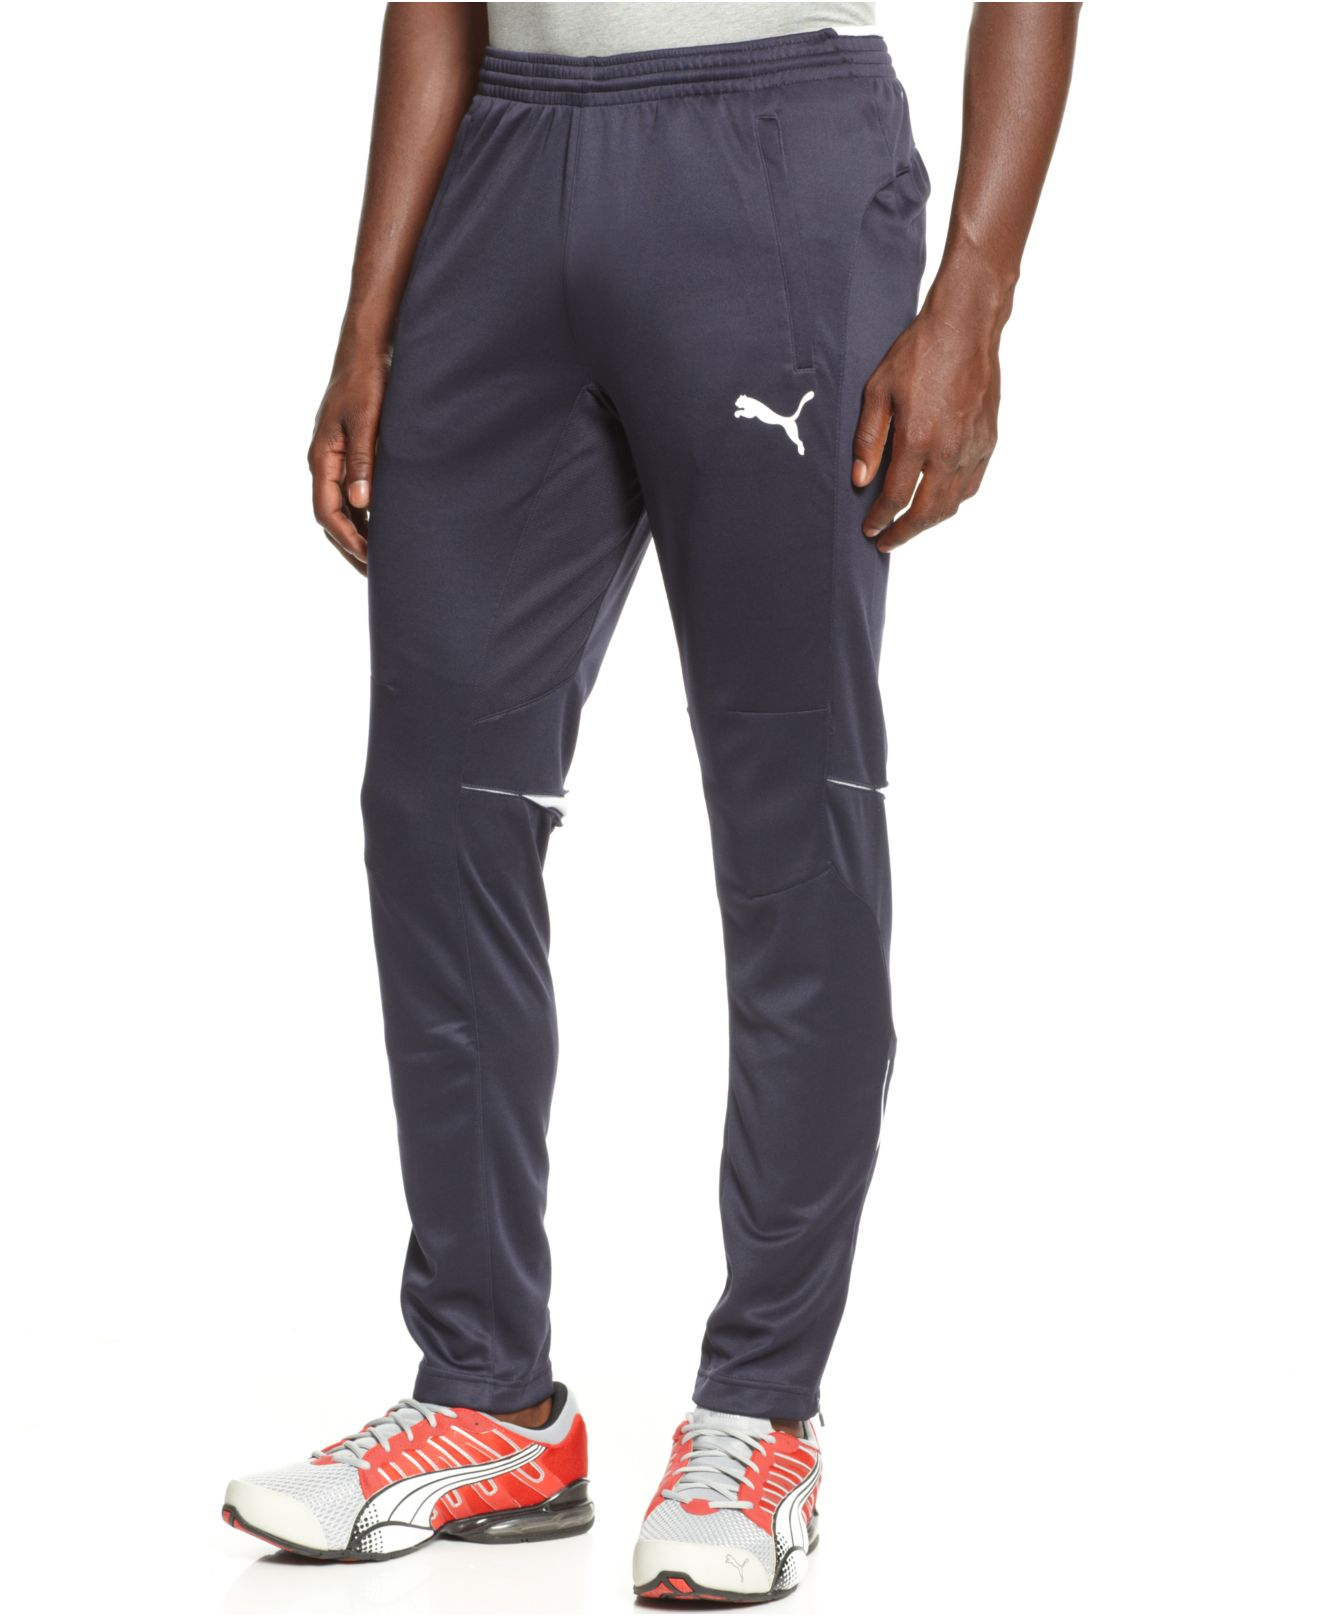 973509a12bad Lyst - PUMA Tapered Drawstring Training Pants in Blue for Men